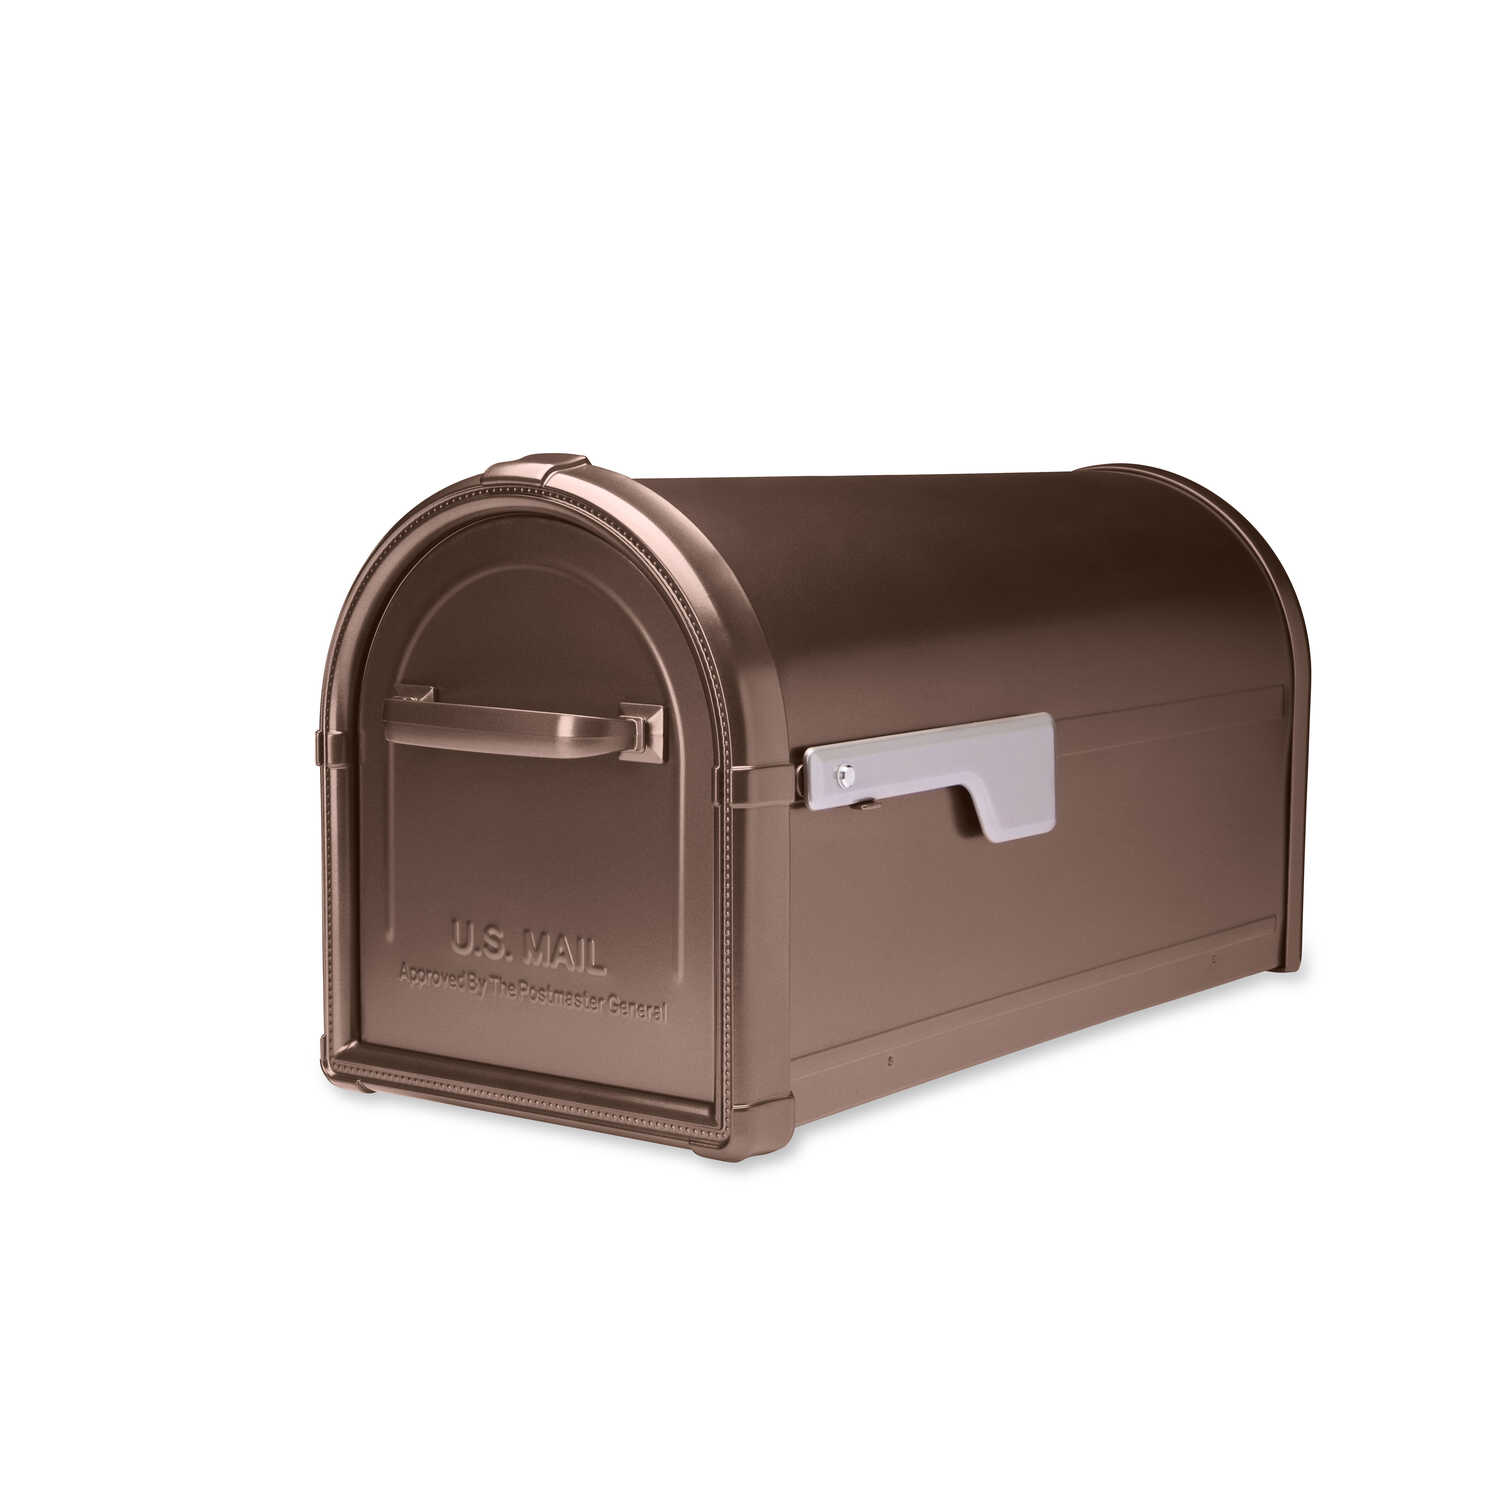 Architectural Mailboxes  Hillsborough  Galvanized Steel  Post Mounted  Copper  Mailbox  11.06 in. H